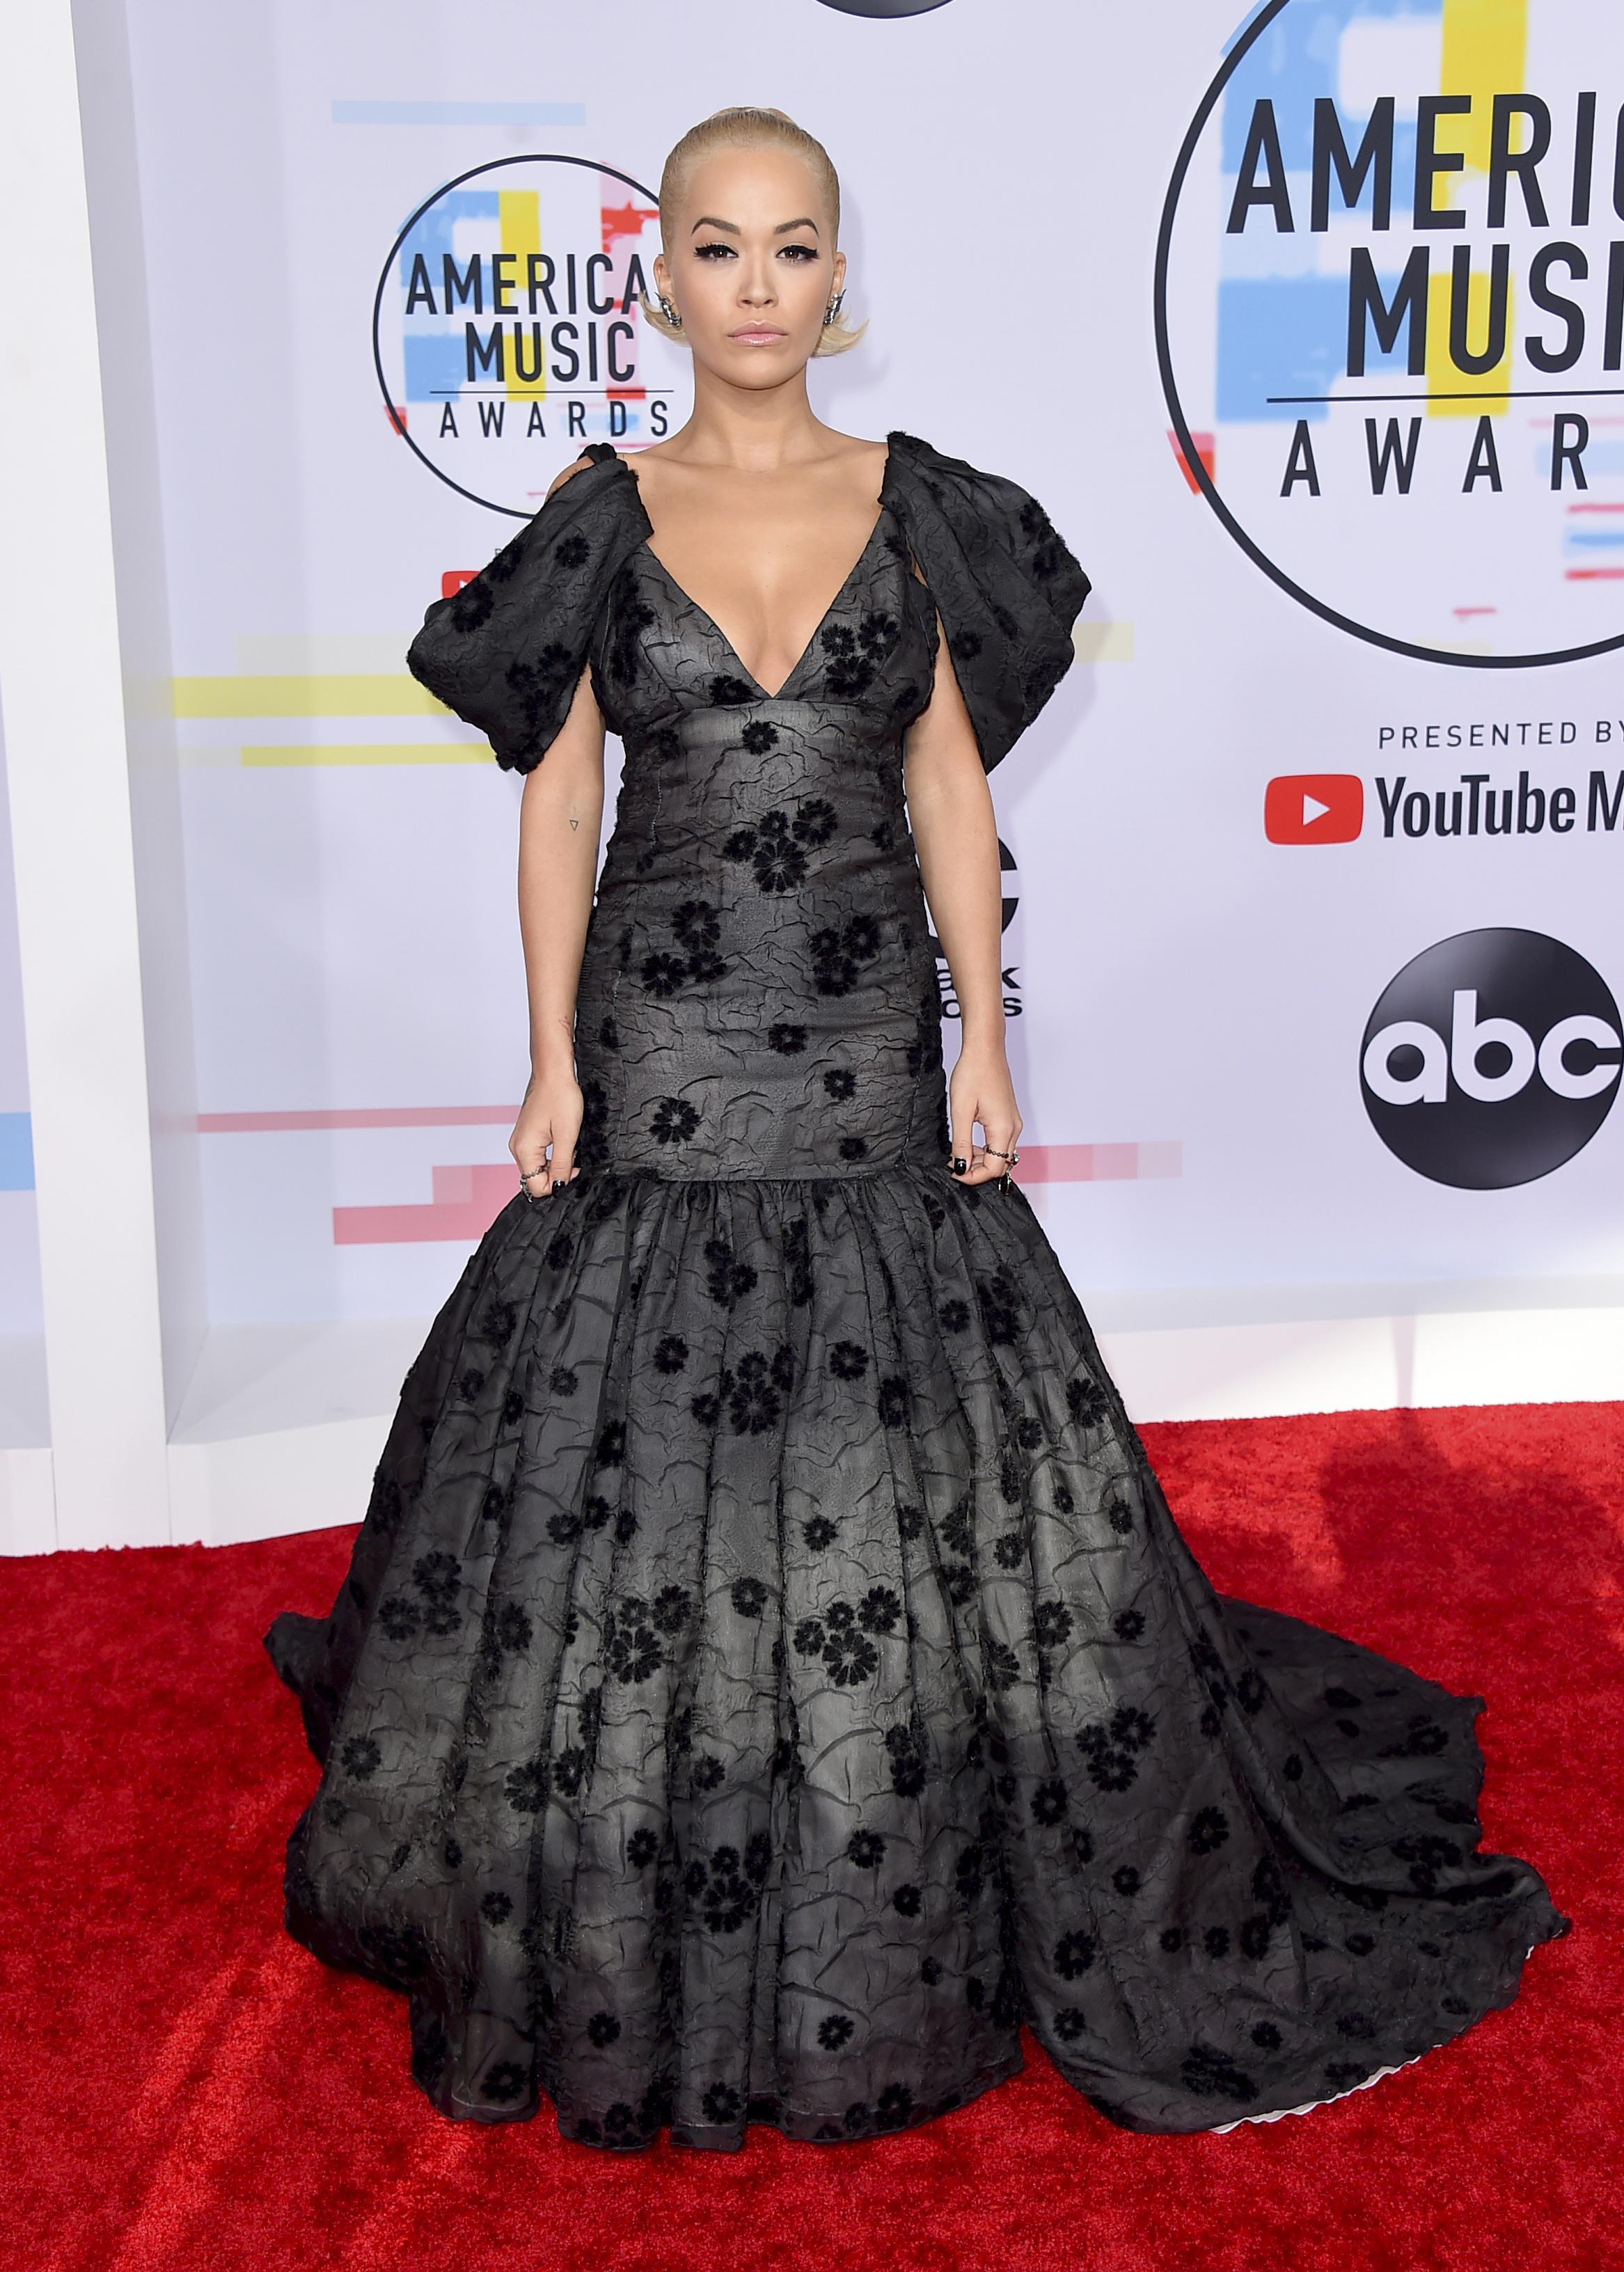 "<div class=""meta image-caption""><div class=""origin-logo origin-image none""><span>none</span></div><span class=""caption-text"">Rita Ora arrives at the American Music Awards on Tuesday, Oct. 9, 2018, at the Microsoft Theater in Los Angeles. (Jordan Strauss/Invision/AP)</span></div>"